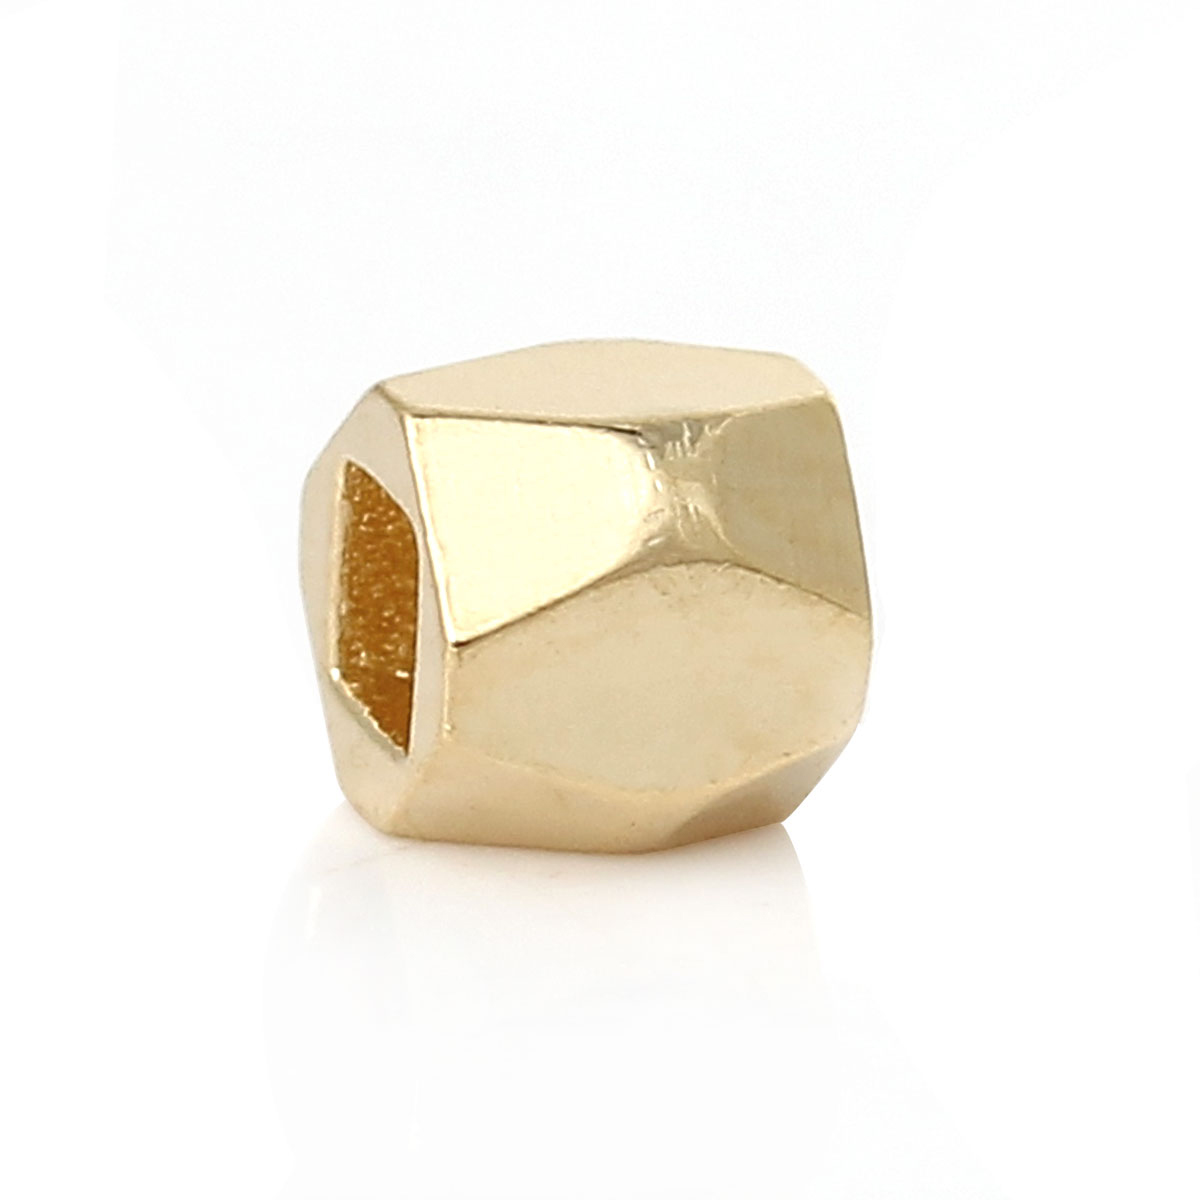 x 3.4mm Doreenbeads Copper Spacer Beads Cube Gold Color Faceted About 3.4mm 1/8 1/8 ,hole:approx 1.7mm X 1.7mm,5 Pieces Easy And Simple To Handle